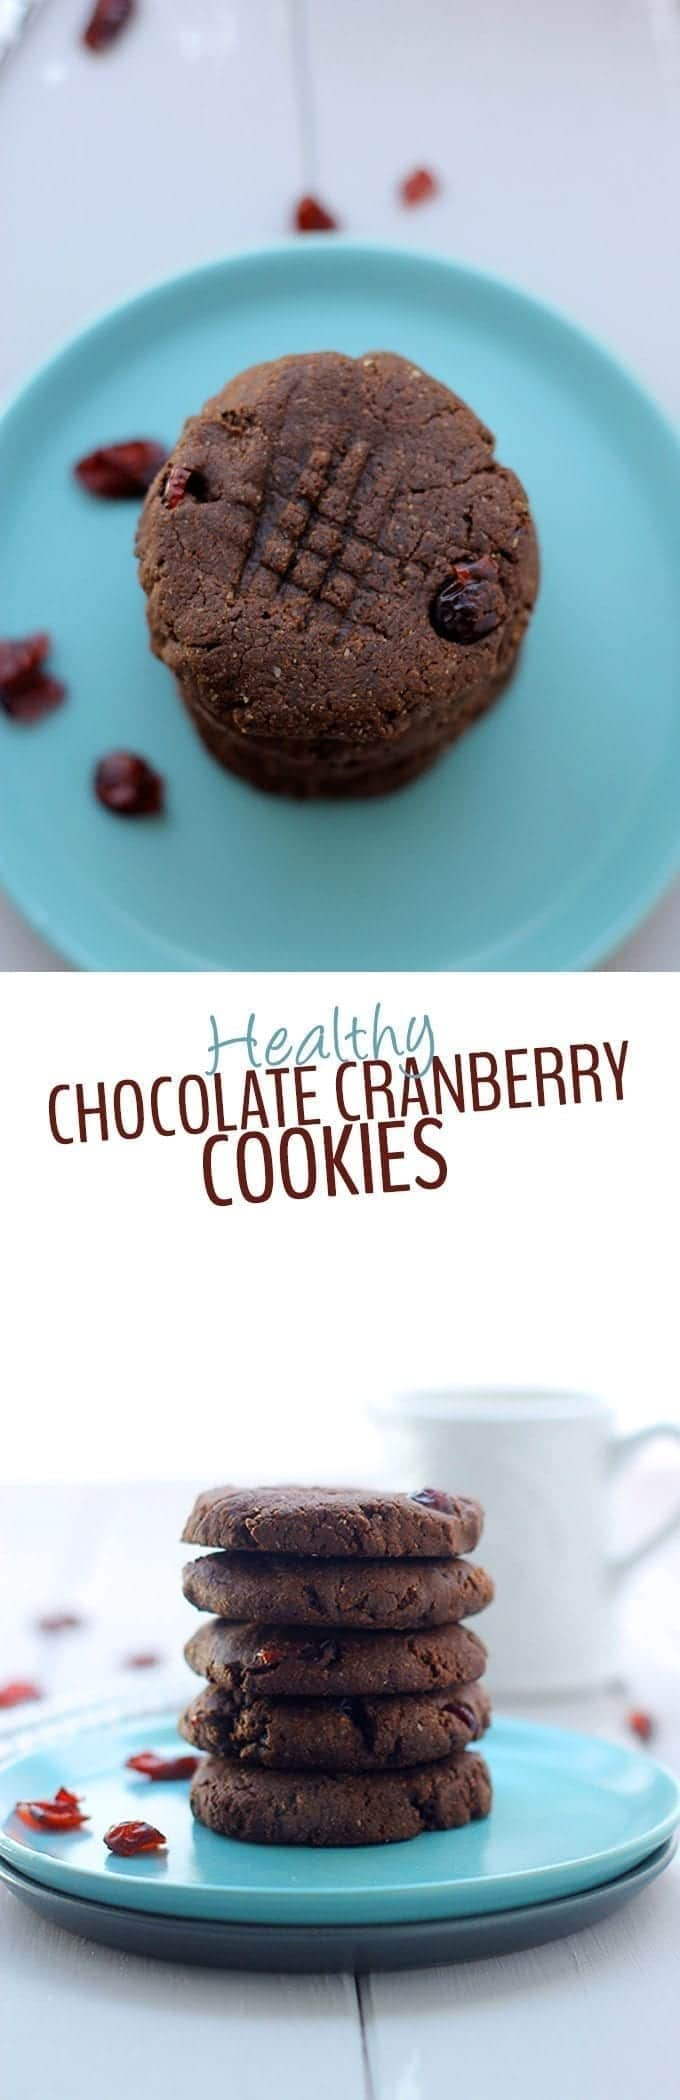 Get your Fall baking fix with these Grain-Free Chocolate Cranberry Cookies . Made with just 6 simple ingredients, these healthy chocolate cookies will hit the spot!